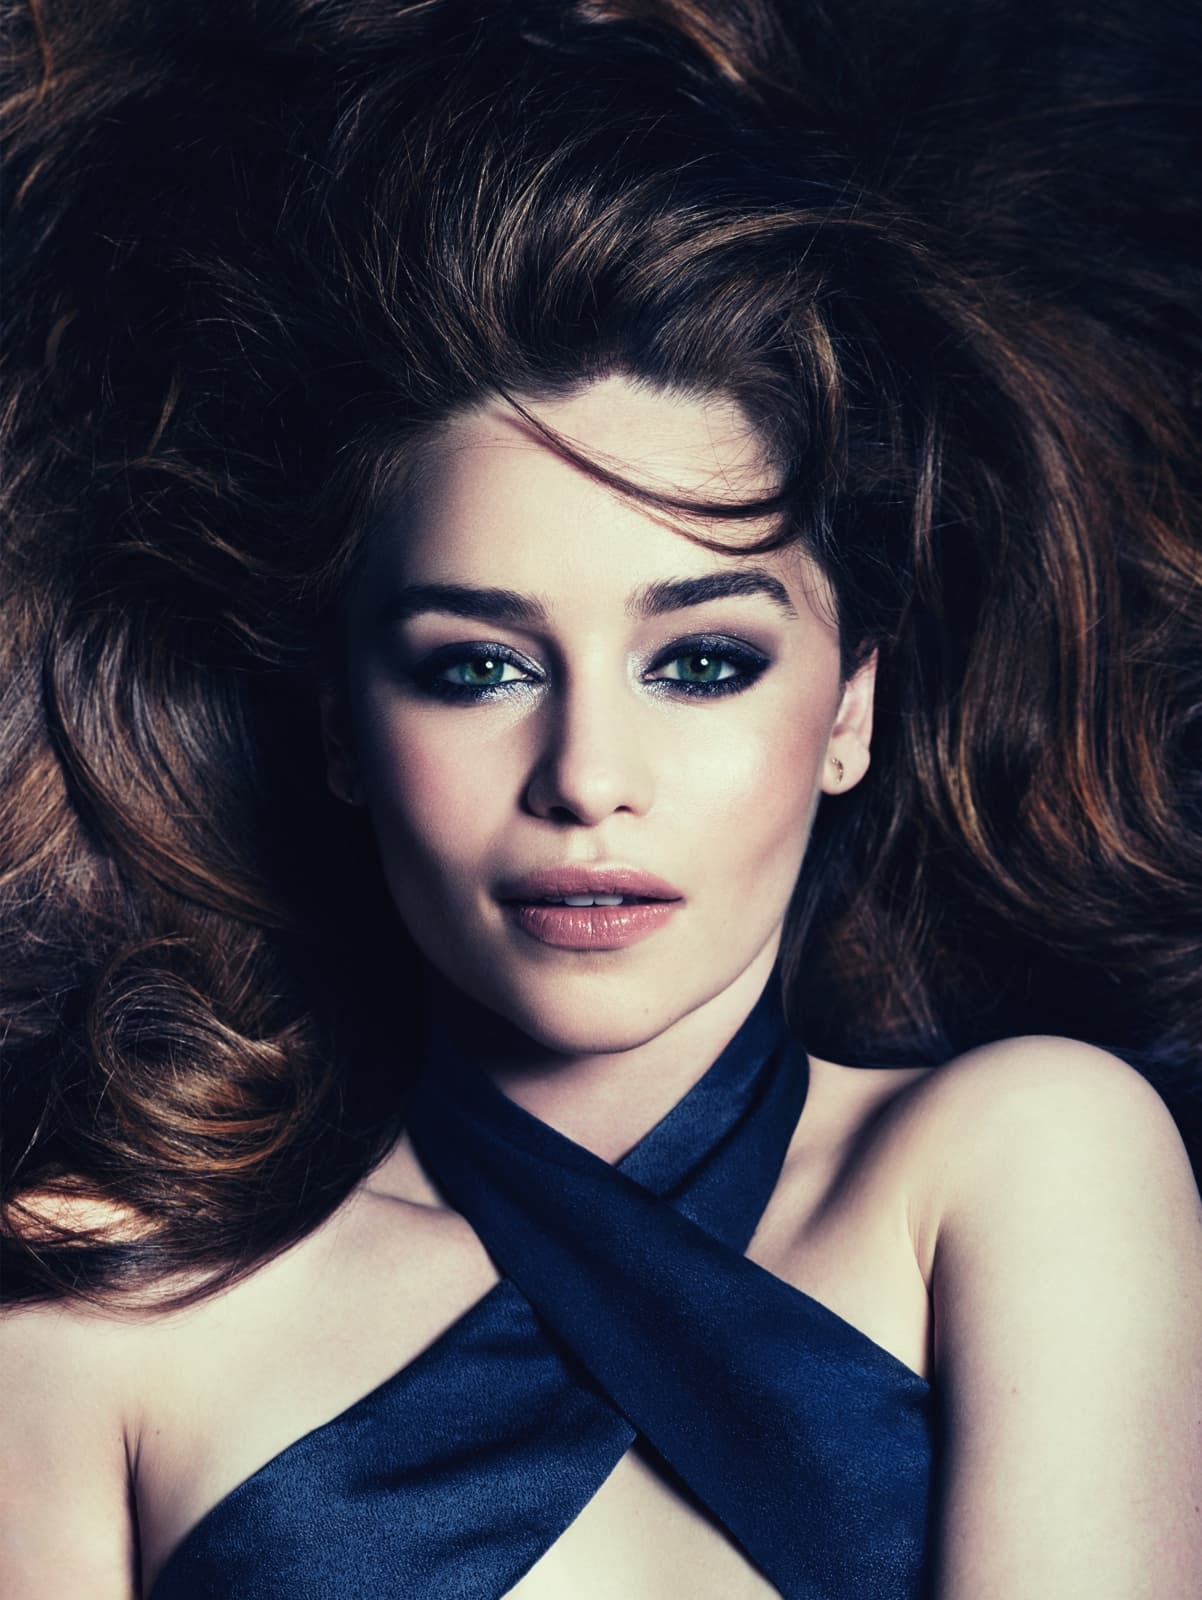 Iphone Wallpaper Resolution 15 Emilia Clarke Wallpapers Hd High Quality Resolution